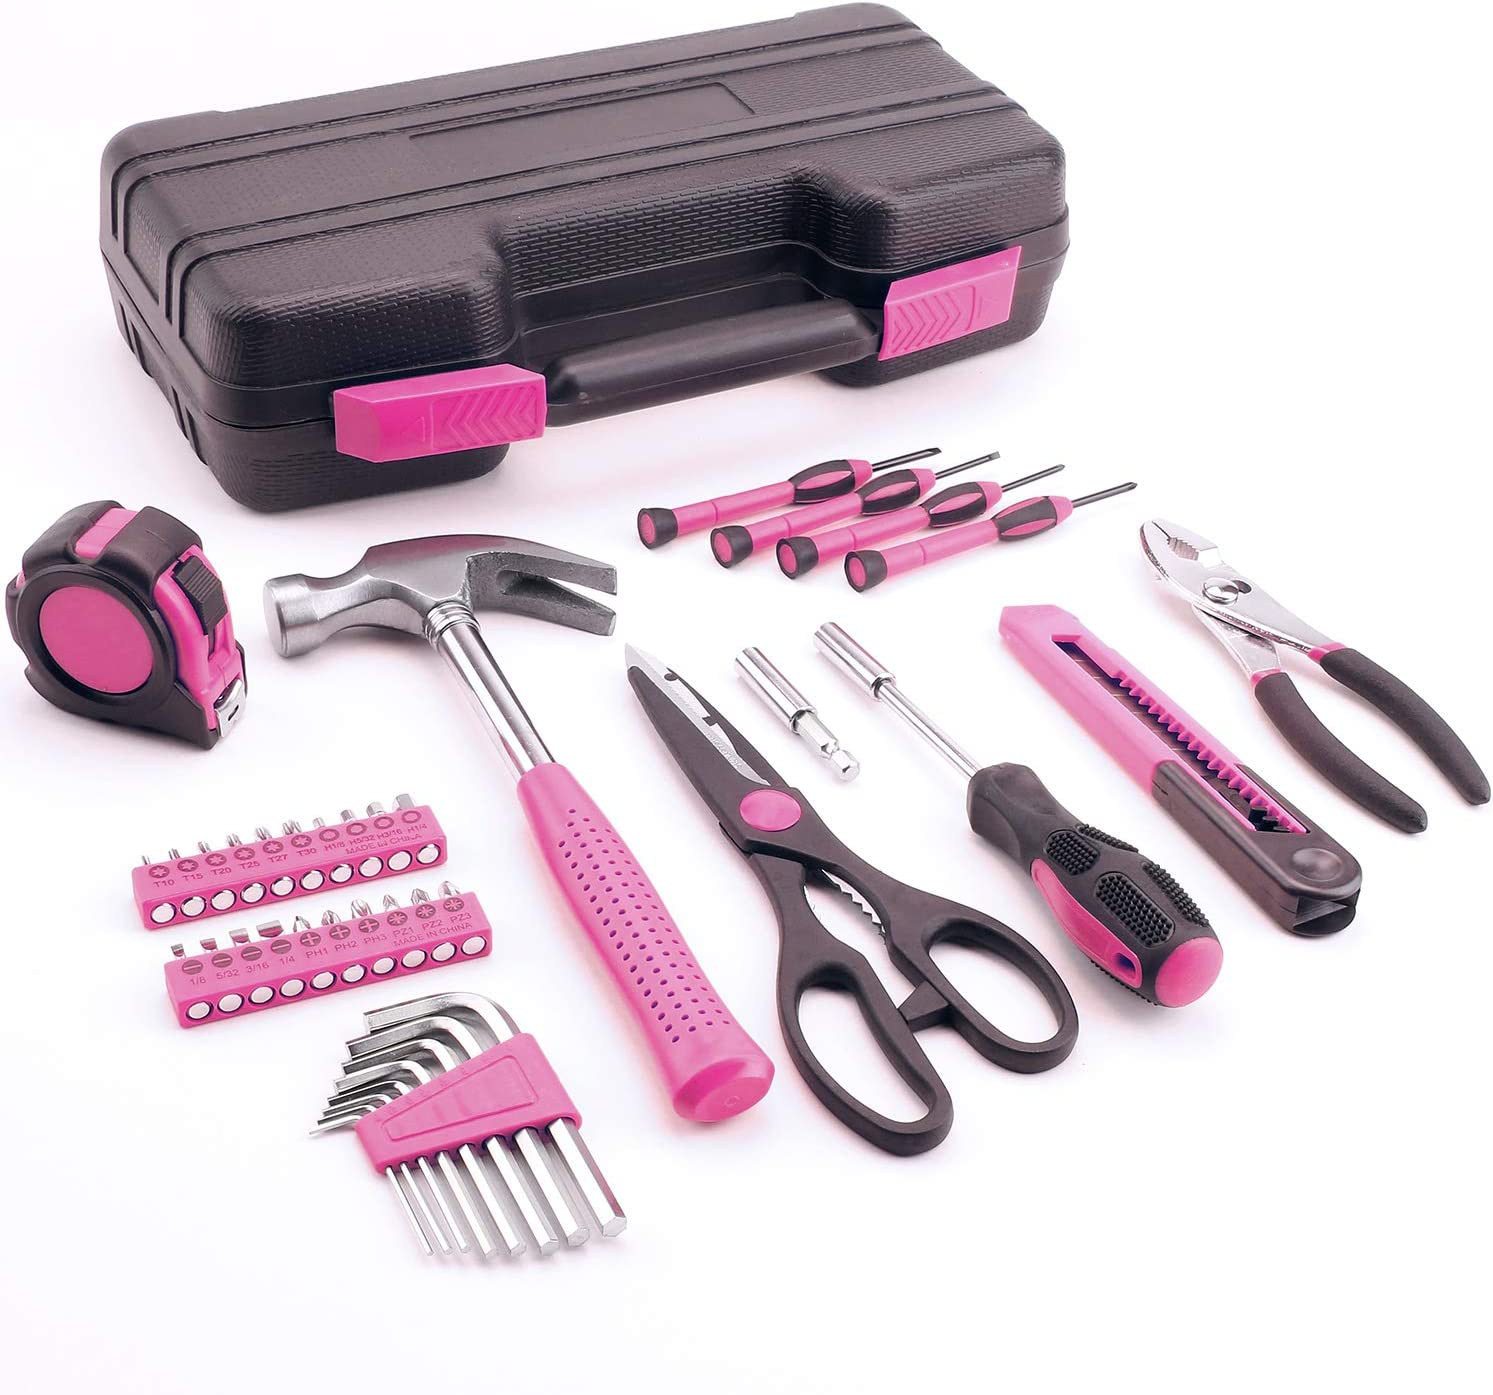 40-Piece All Purpose Household Pink Tool Kit for Girls, Ladies and Women with Carrying Case